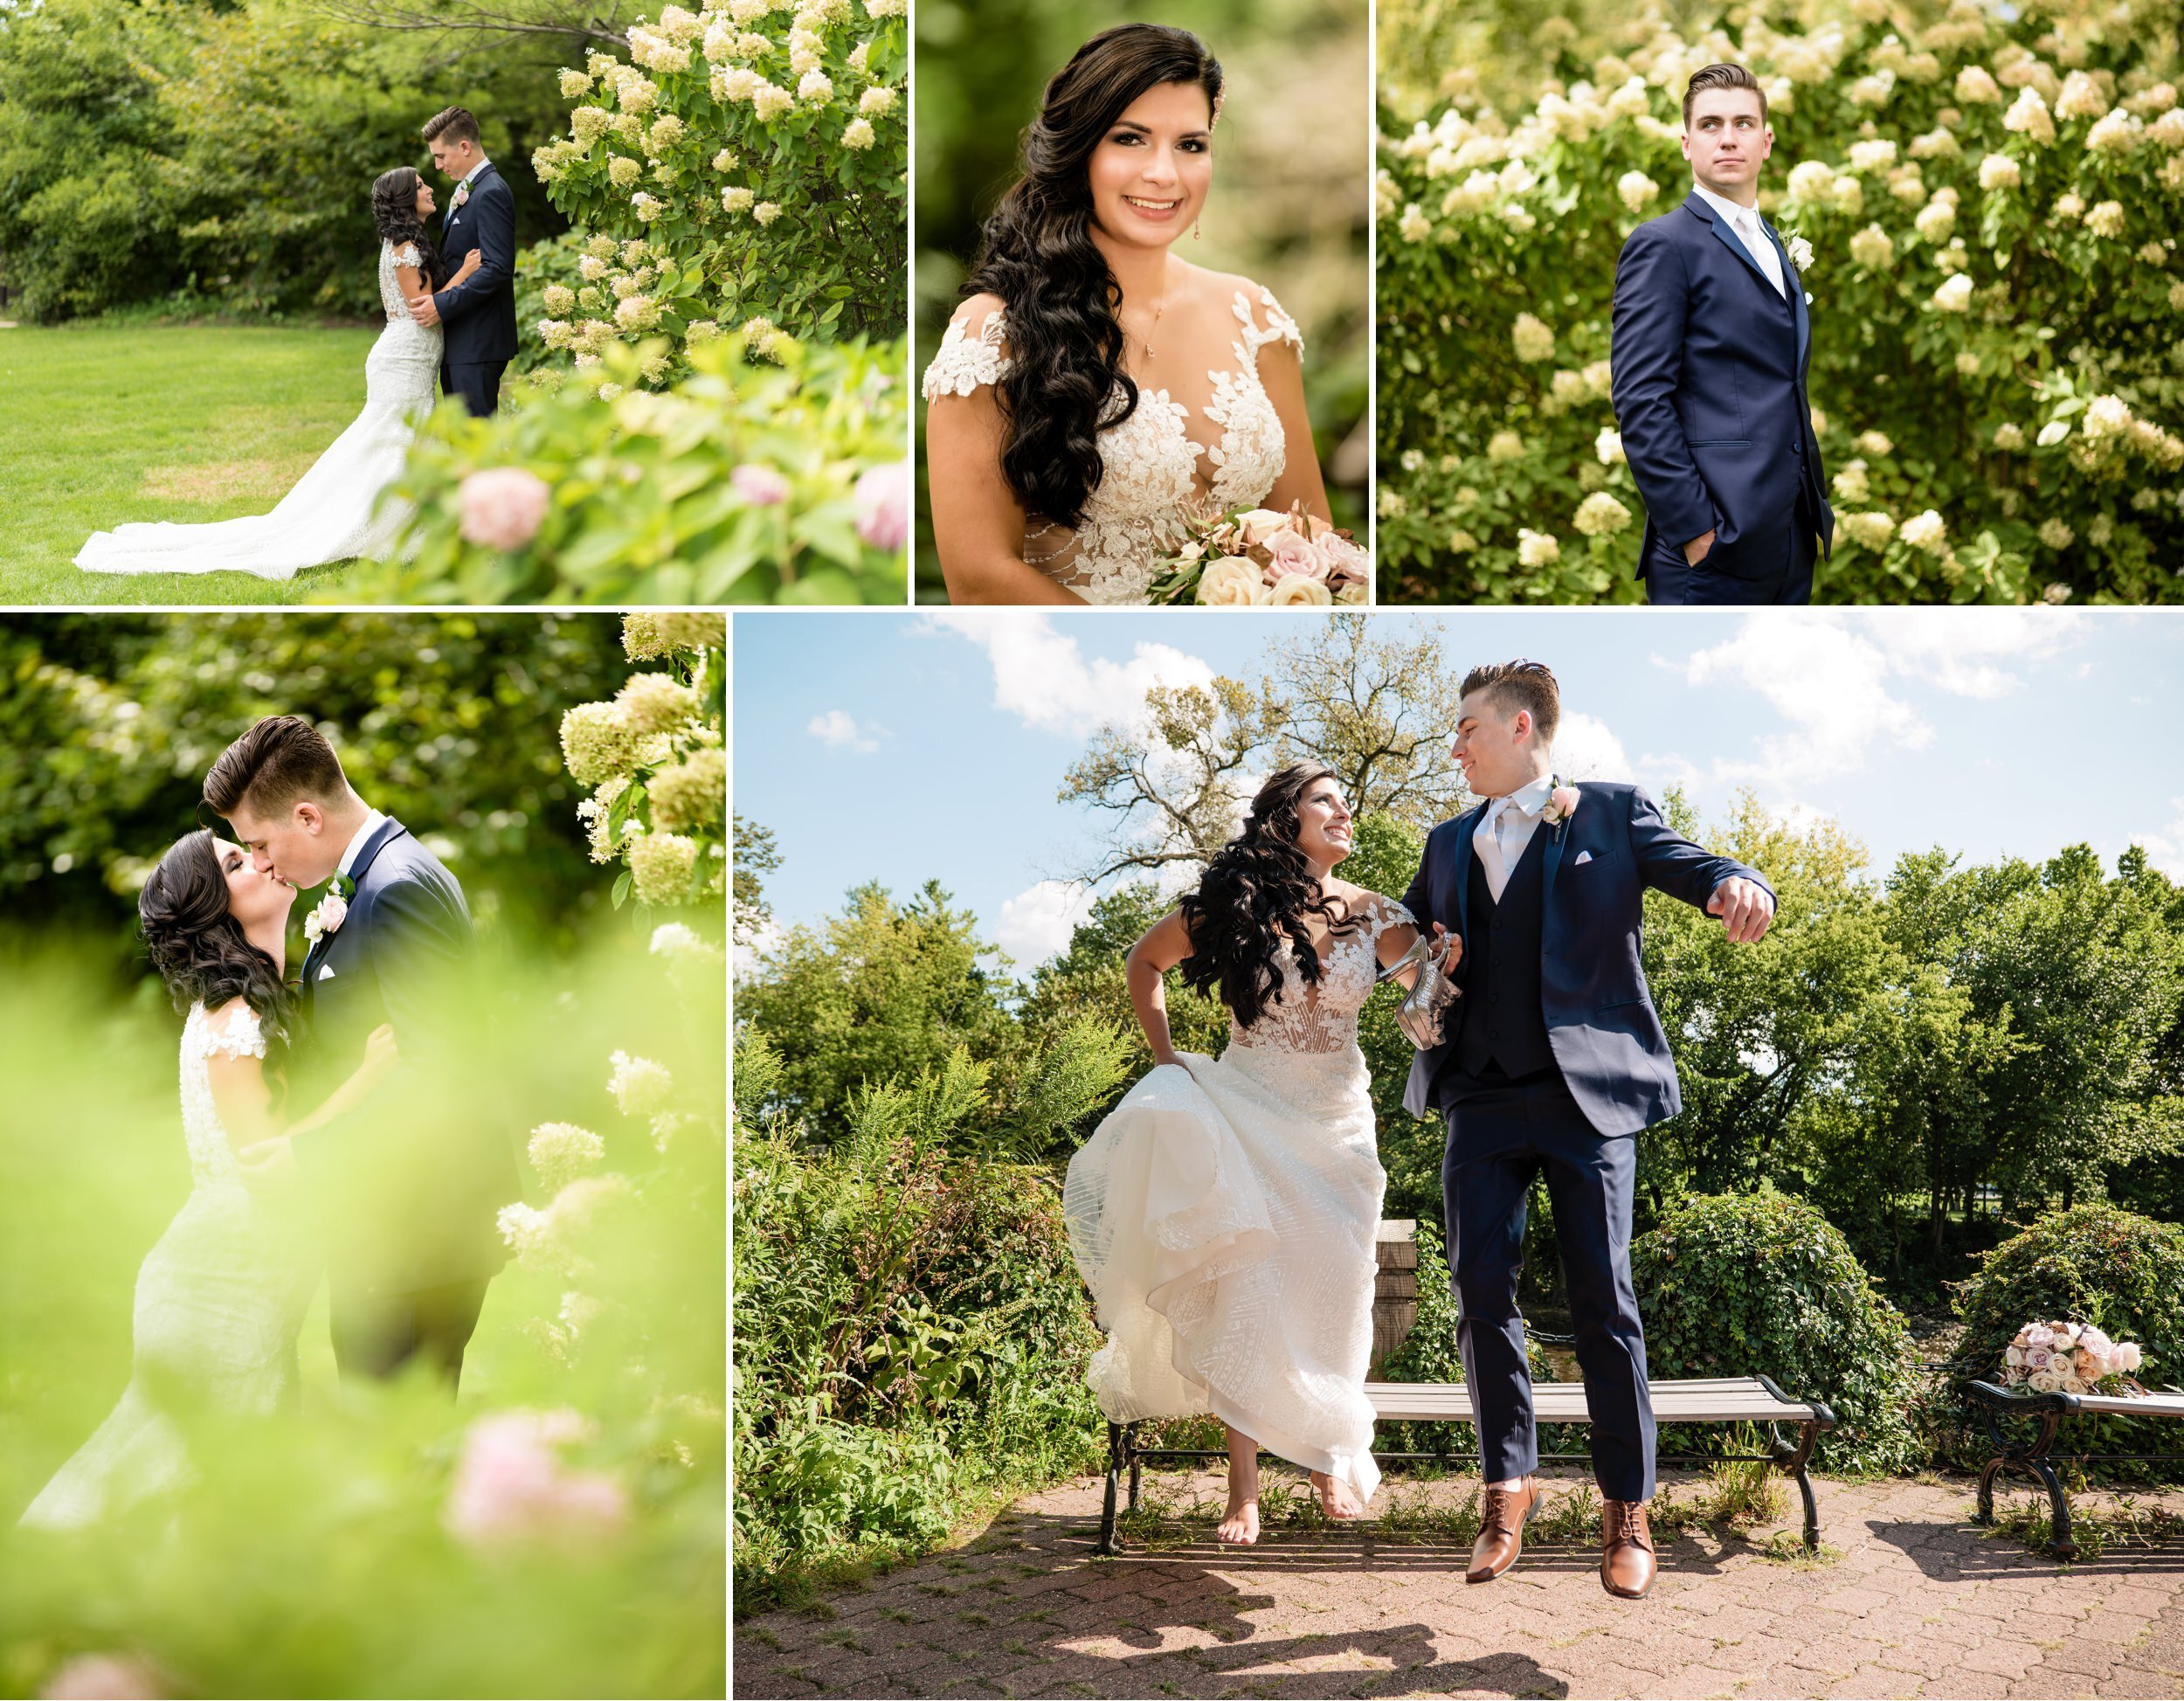 Beautiful and fun wedding photos on Naperville Riverwalk.